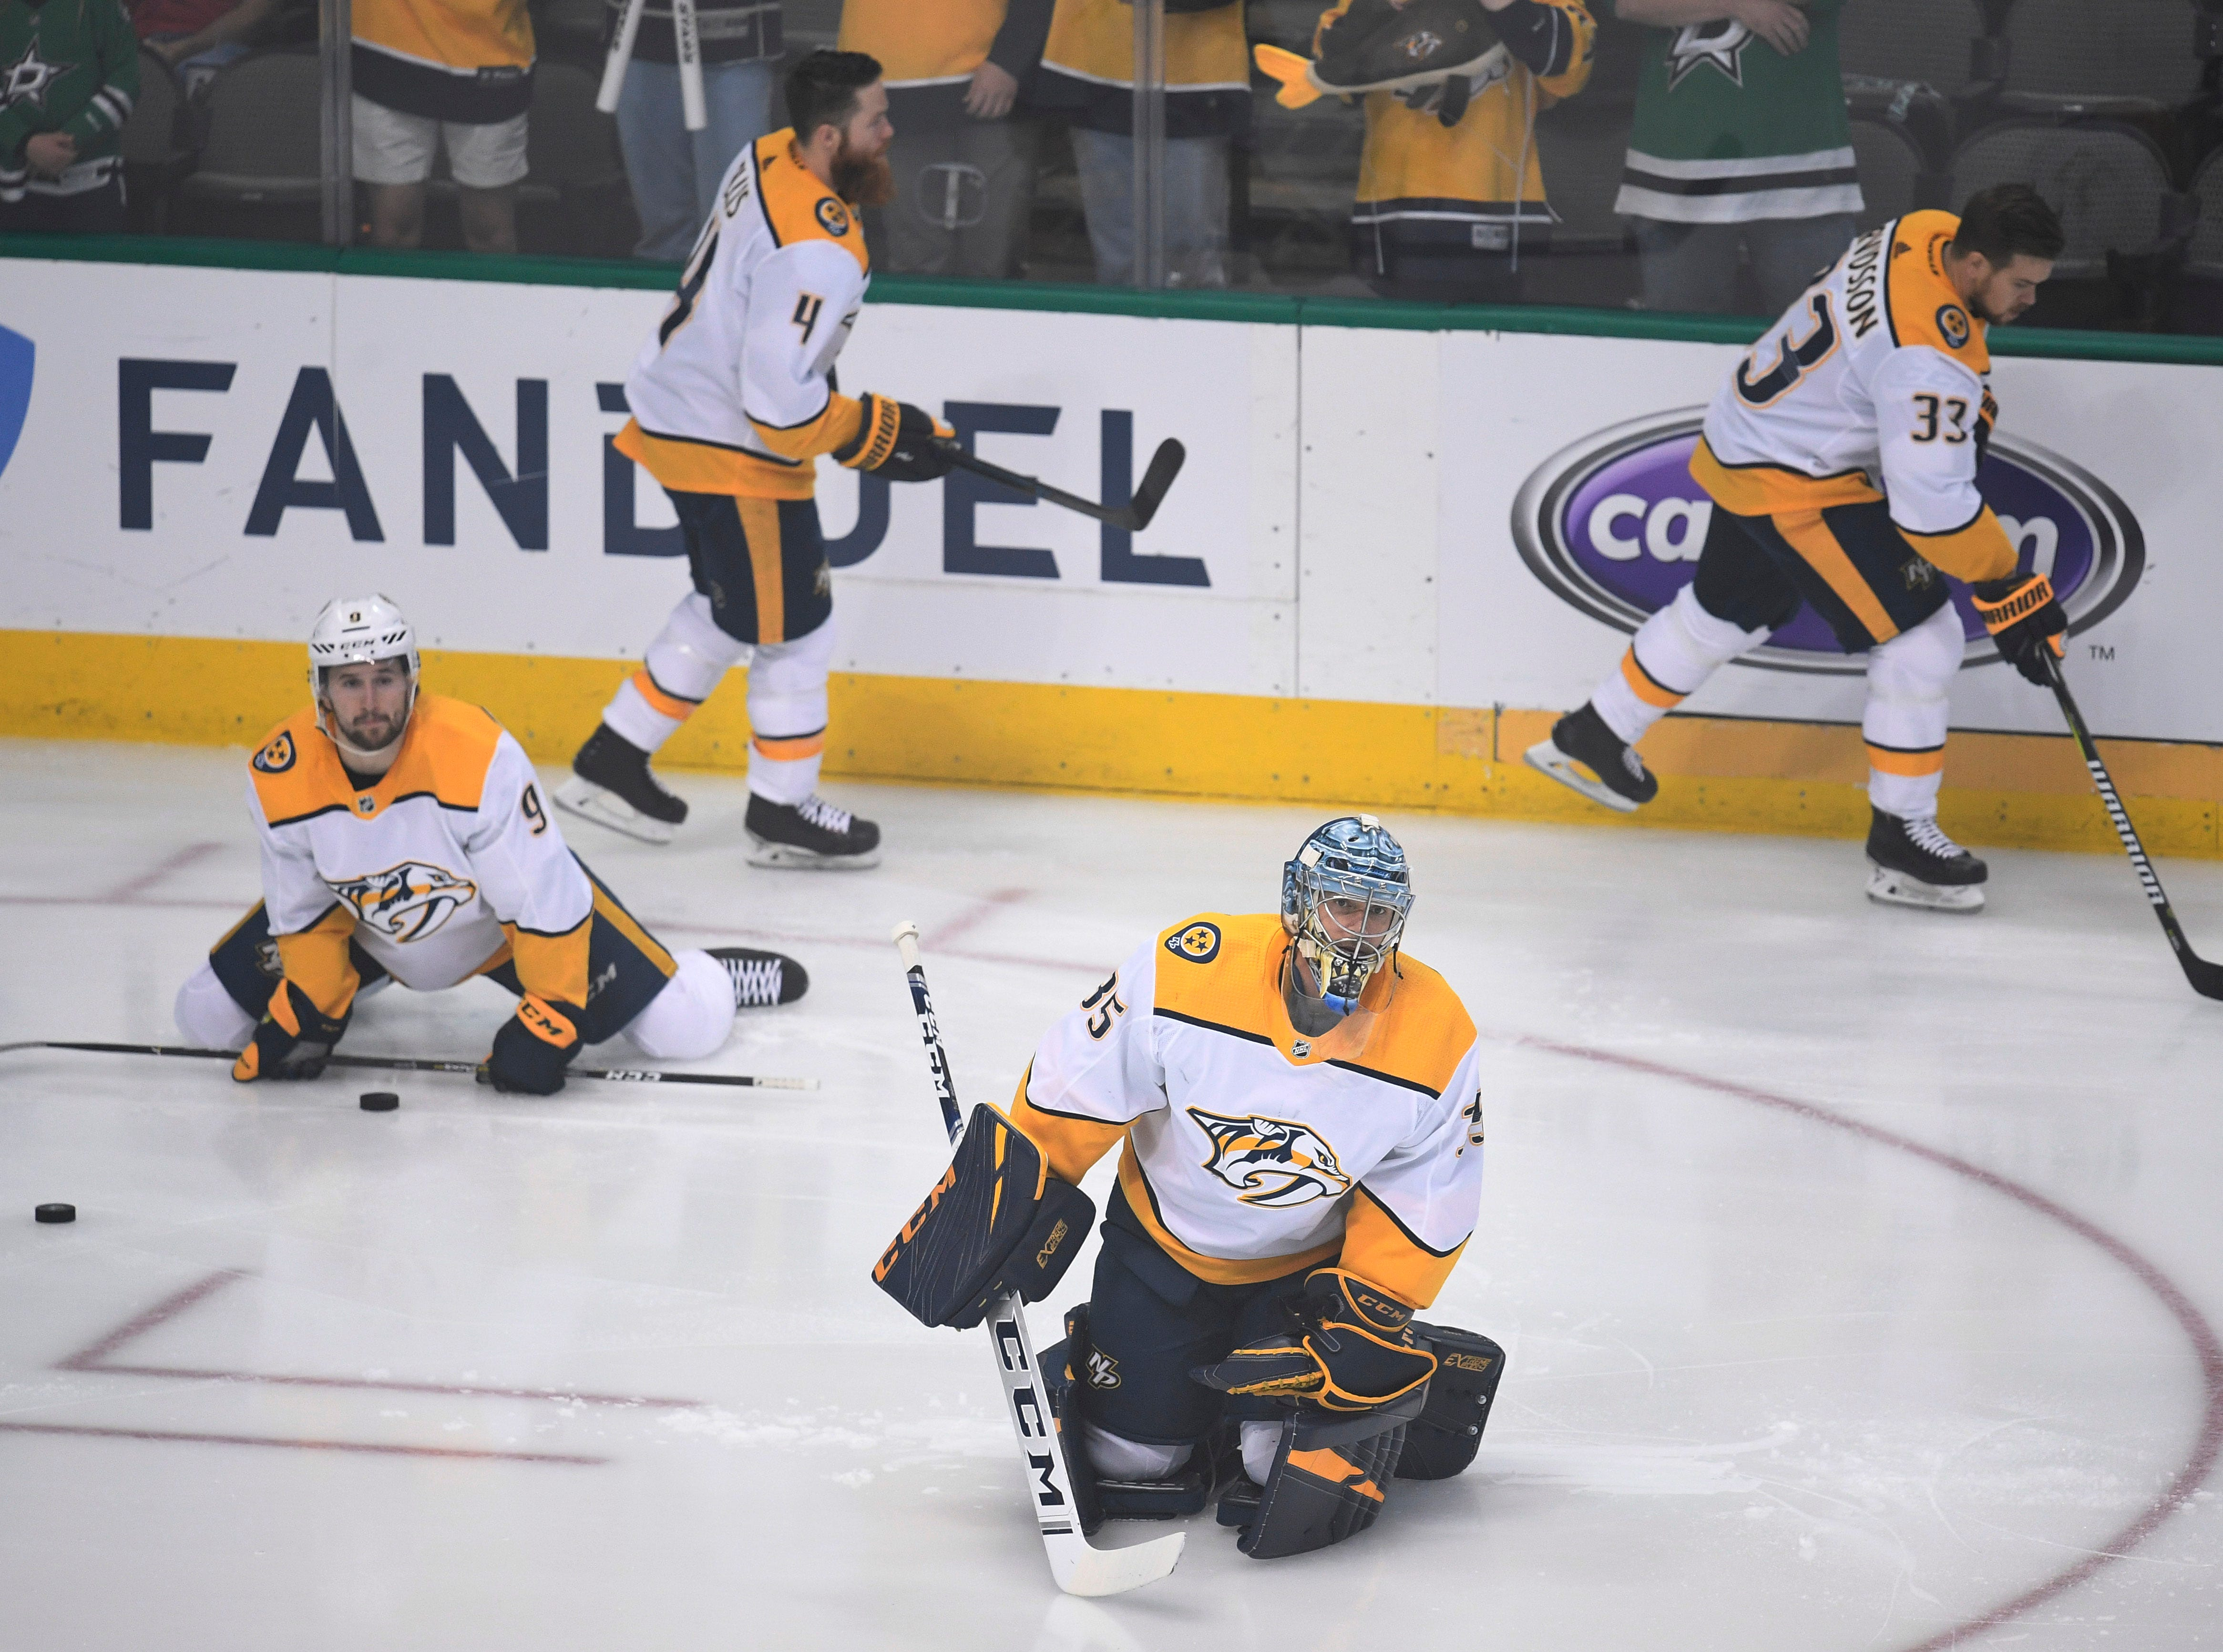 The Predators warm up before the divisional semifinal game against the Stars at the American Airlines Center in Dallas, Texas, Monday, April 22, 2019.